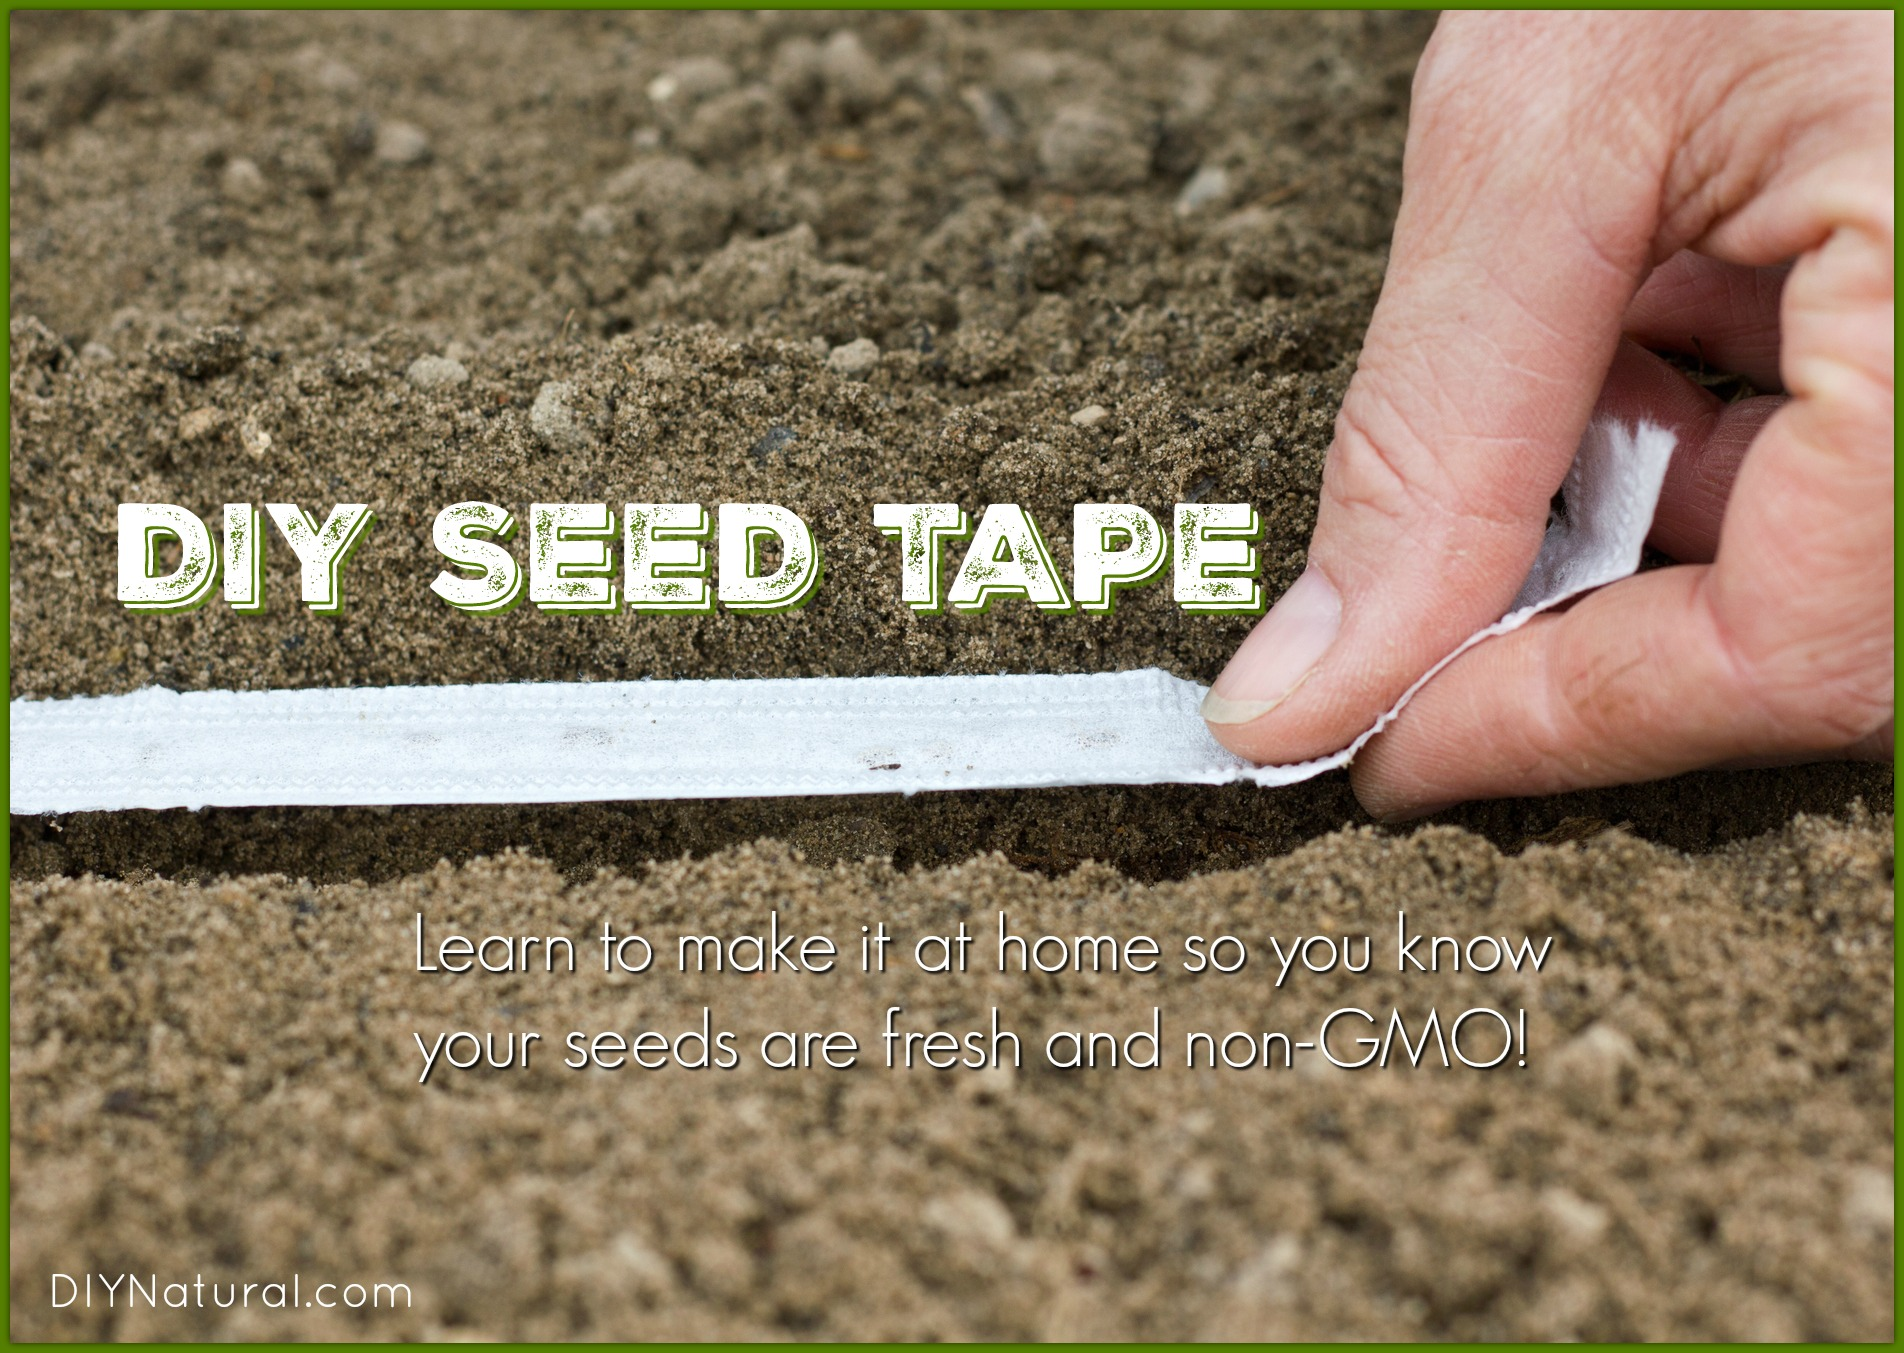 DIY Seed Tape: Learn How To Make Seed Tape at Home